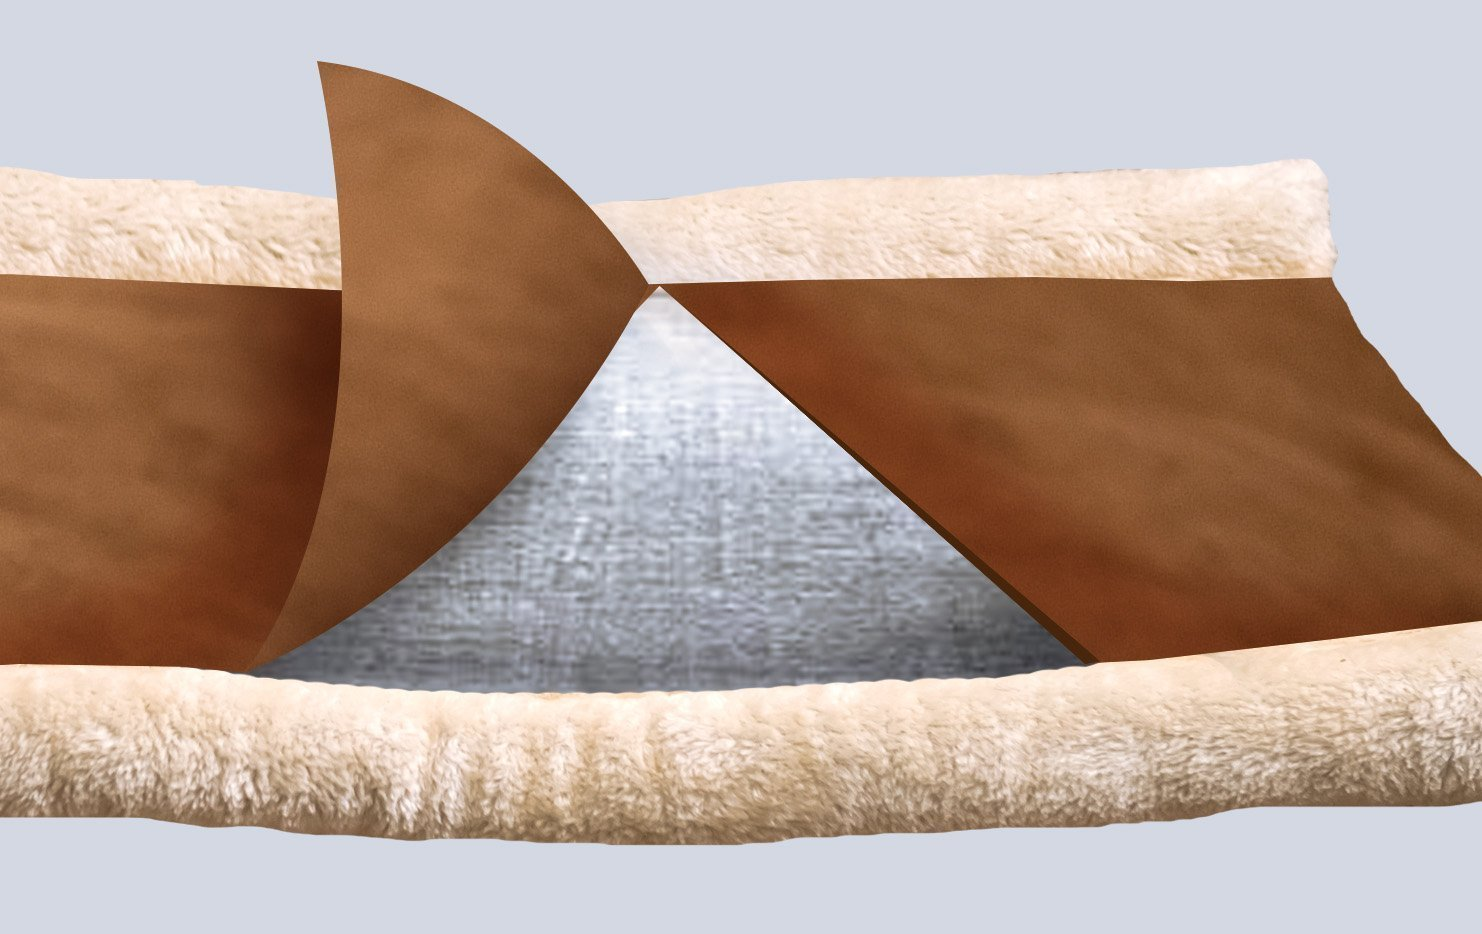 Cat Tunnel Bed Mat Tube Indoor Cushion Mat Puppy Warm Tube Sleeping Bed Pet Supplies Accessories (Brown) Pro-Noke